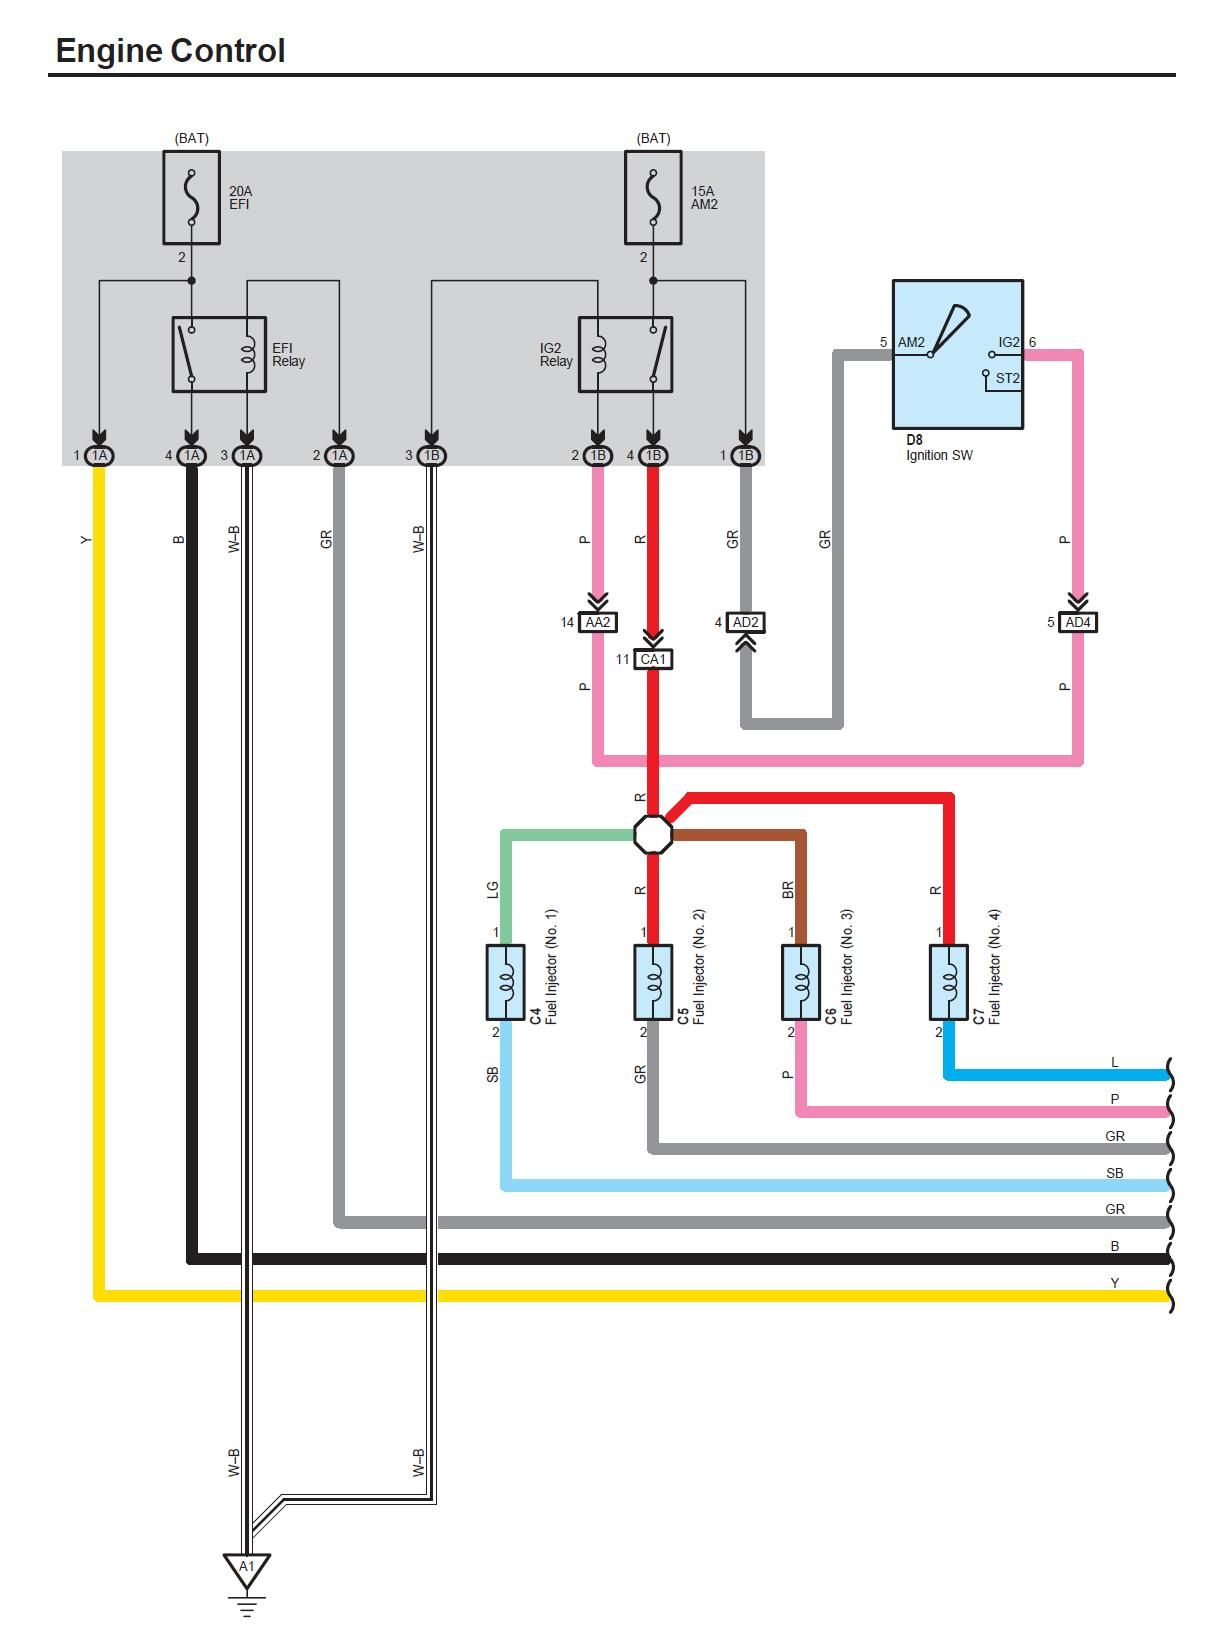 Qlink Engine Diagram in addition Bms Wiring Diagram together with Technical Info further Suzuki Ltz 400 Carburetor Diagram further Boss Mc400 Wiring Diagram. on odes wiring diagram